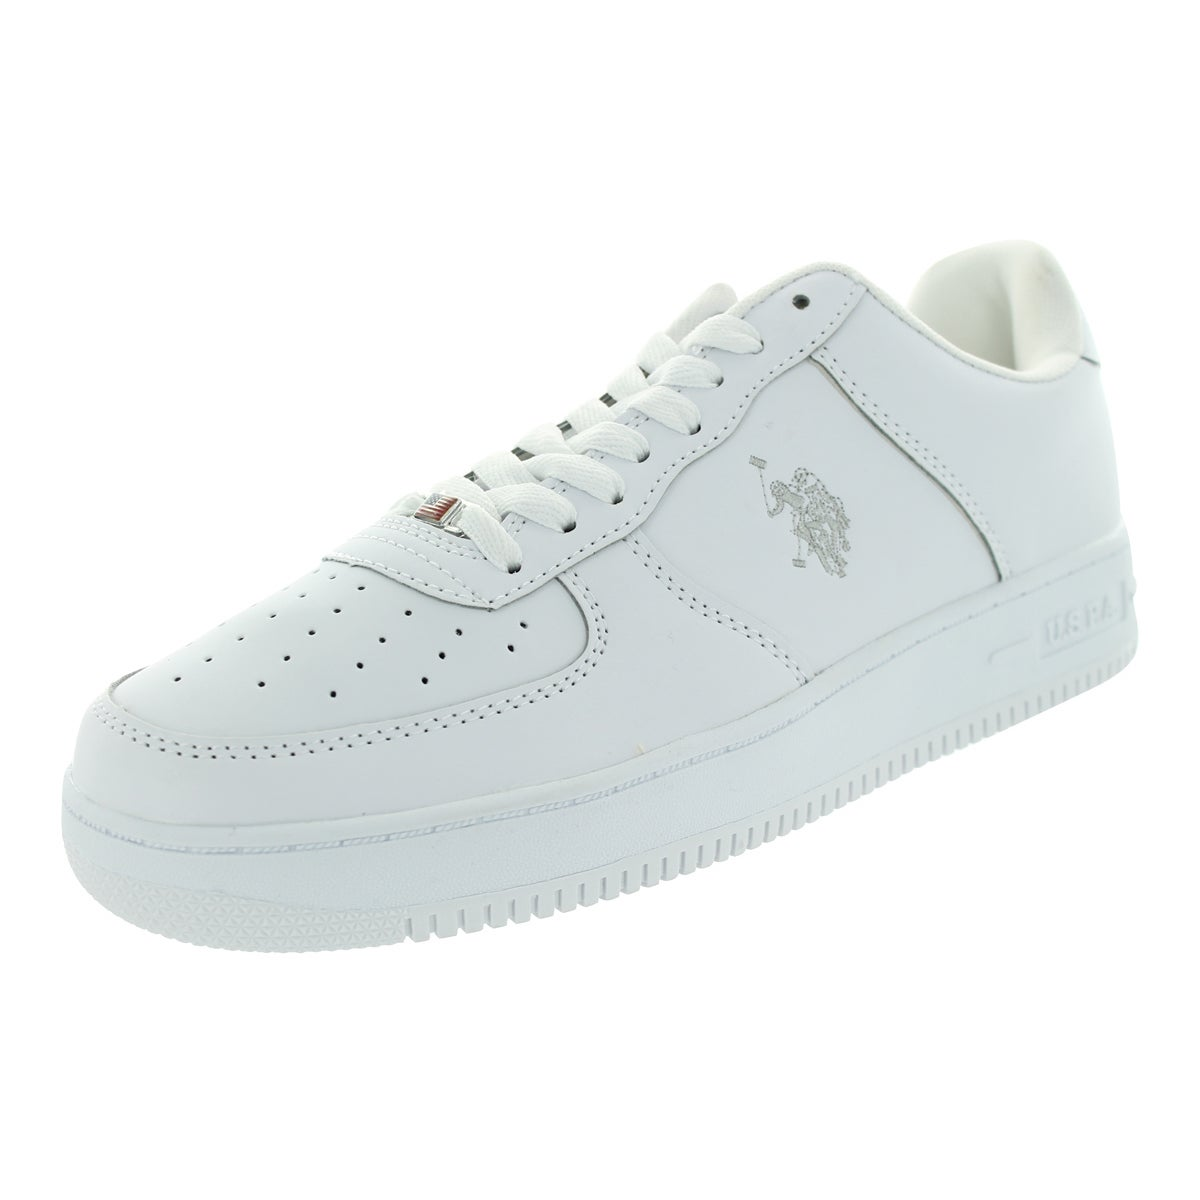 uspa polo shoes, OFF 75%,Latest trends,